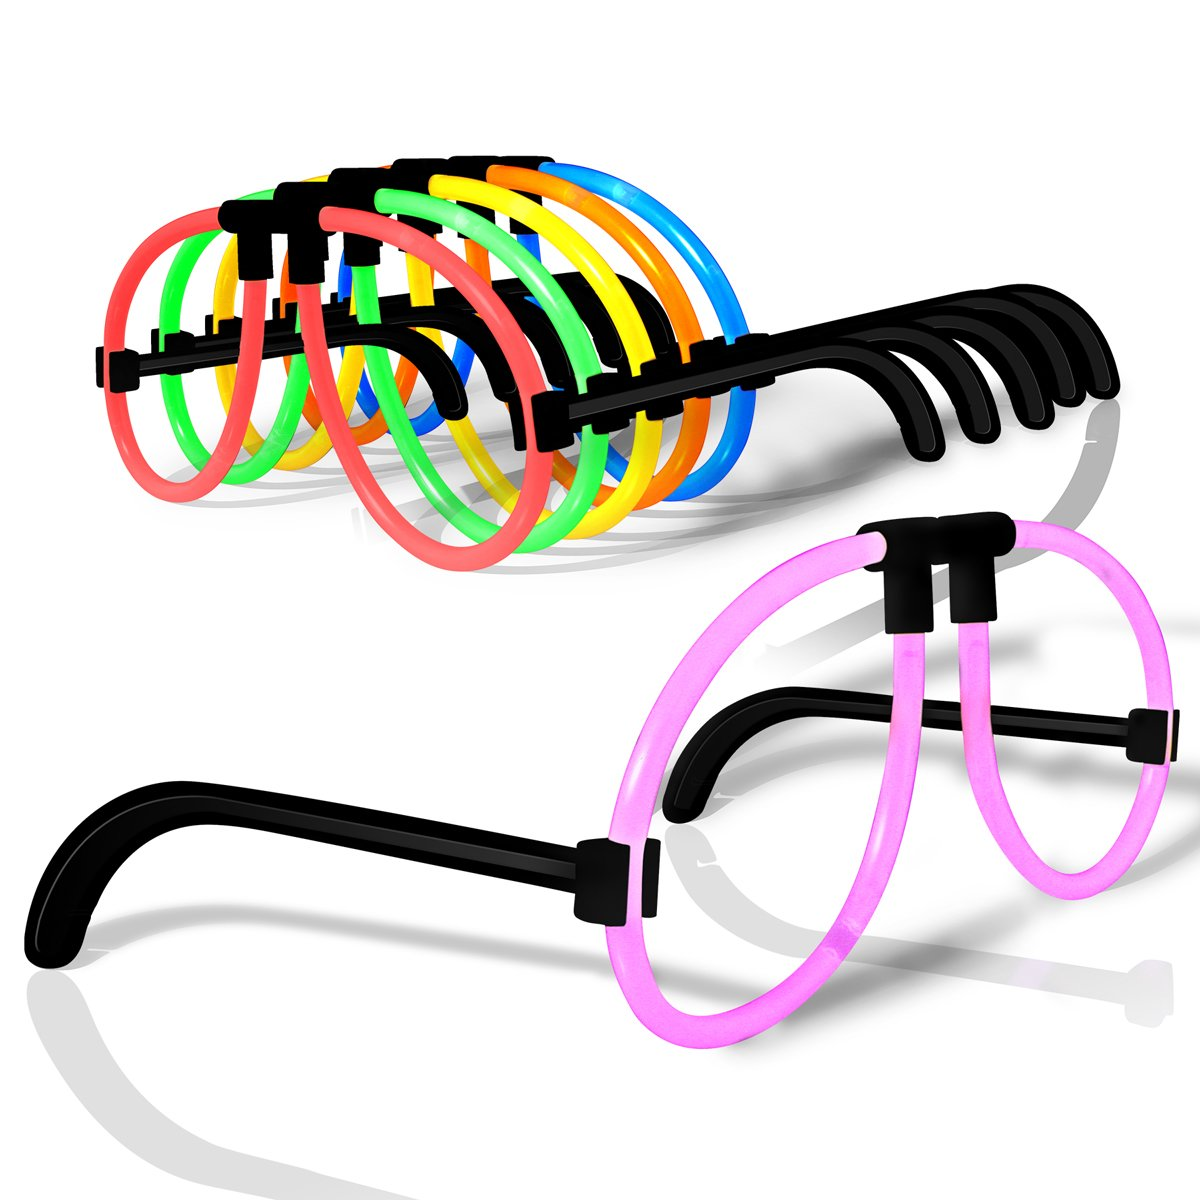 Glowstick Glasses All Products